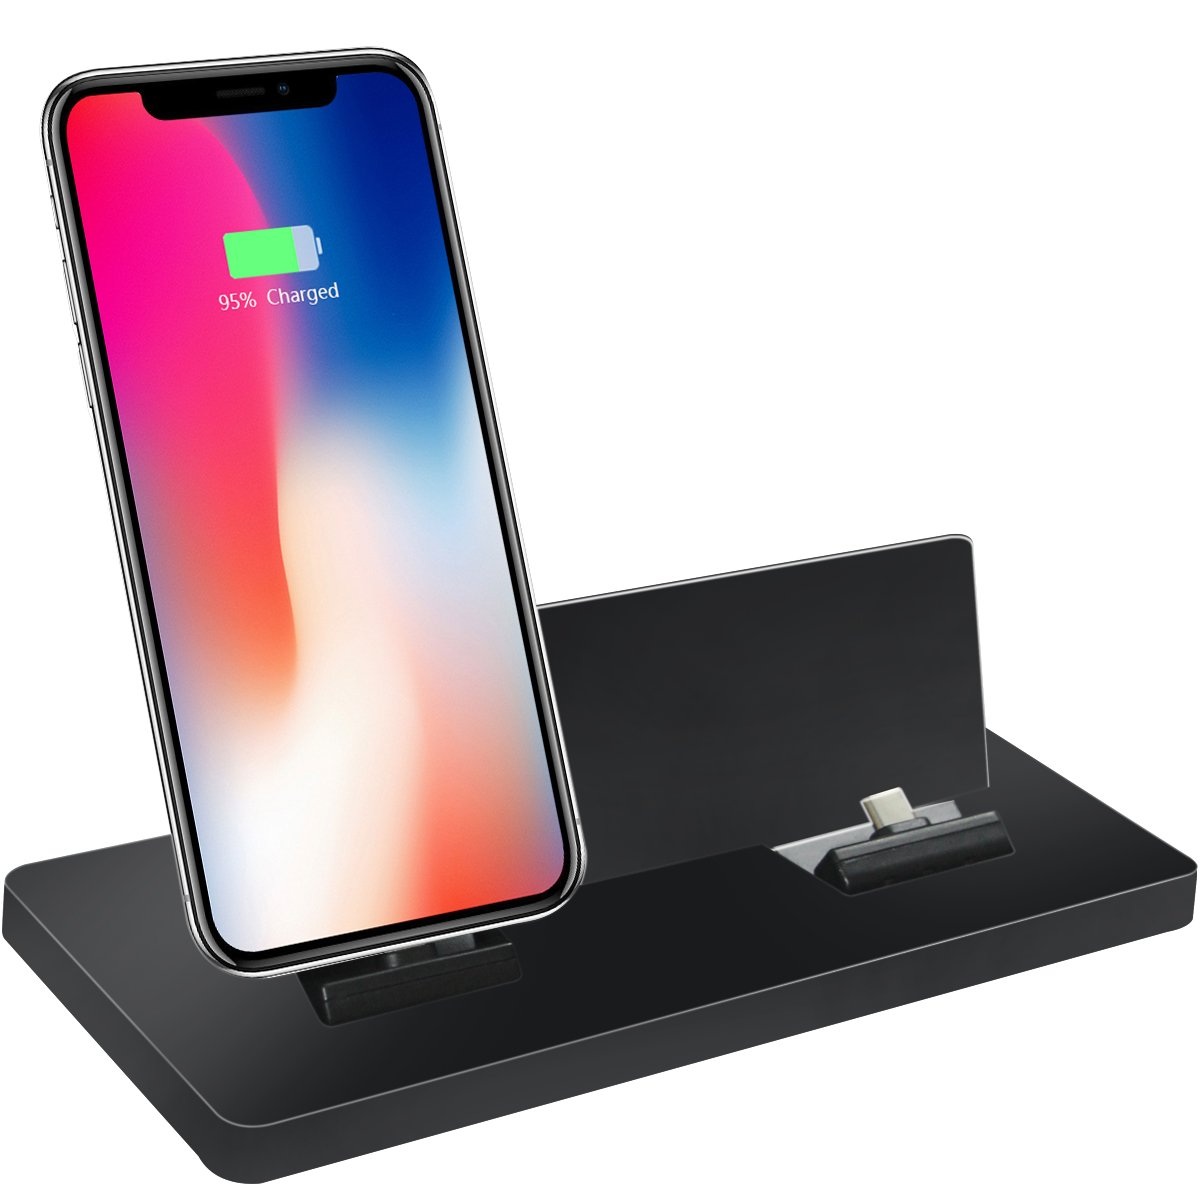 Magnetic Charger Dock Charging Station, Multiport Adapter with Multifunctional Mobile Phone Bracket For iPhone, Android,Type-c Charger and Tablets with Micro-USB